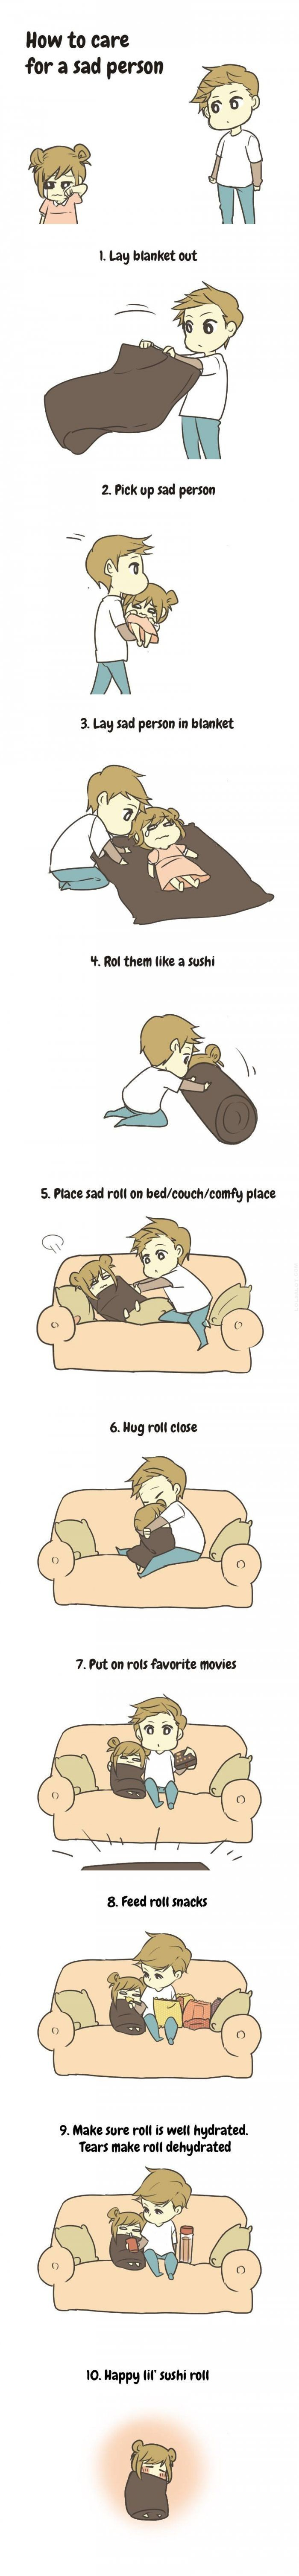 How to look after a tragic individual ♥ http://lolsalot.com/funny-pics/how-to-care-for-a-sad-person-%e2%99%a5/ #Funny #Pic